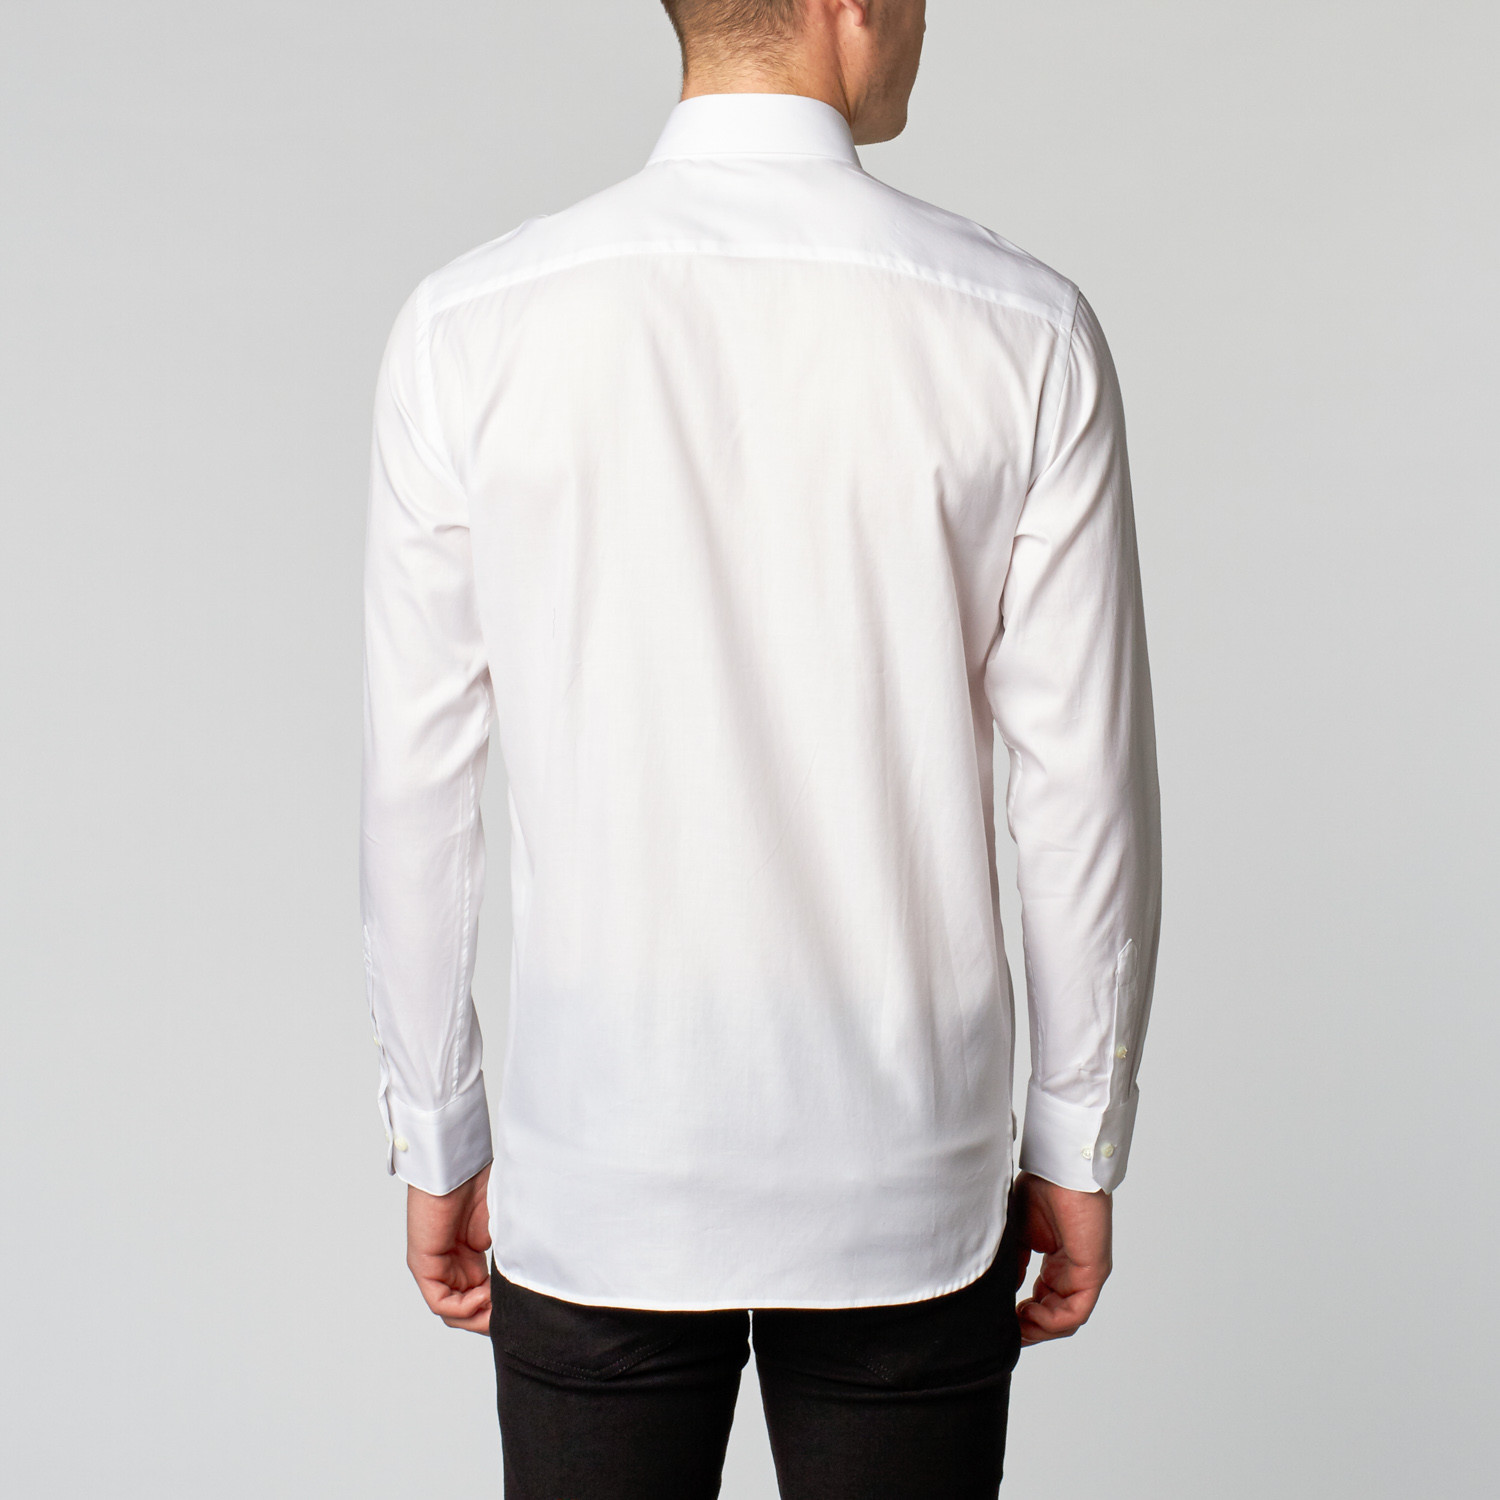 Twill dress shirt classic white us boga for Classic white dress shirt